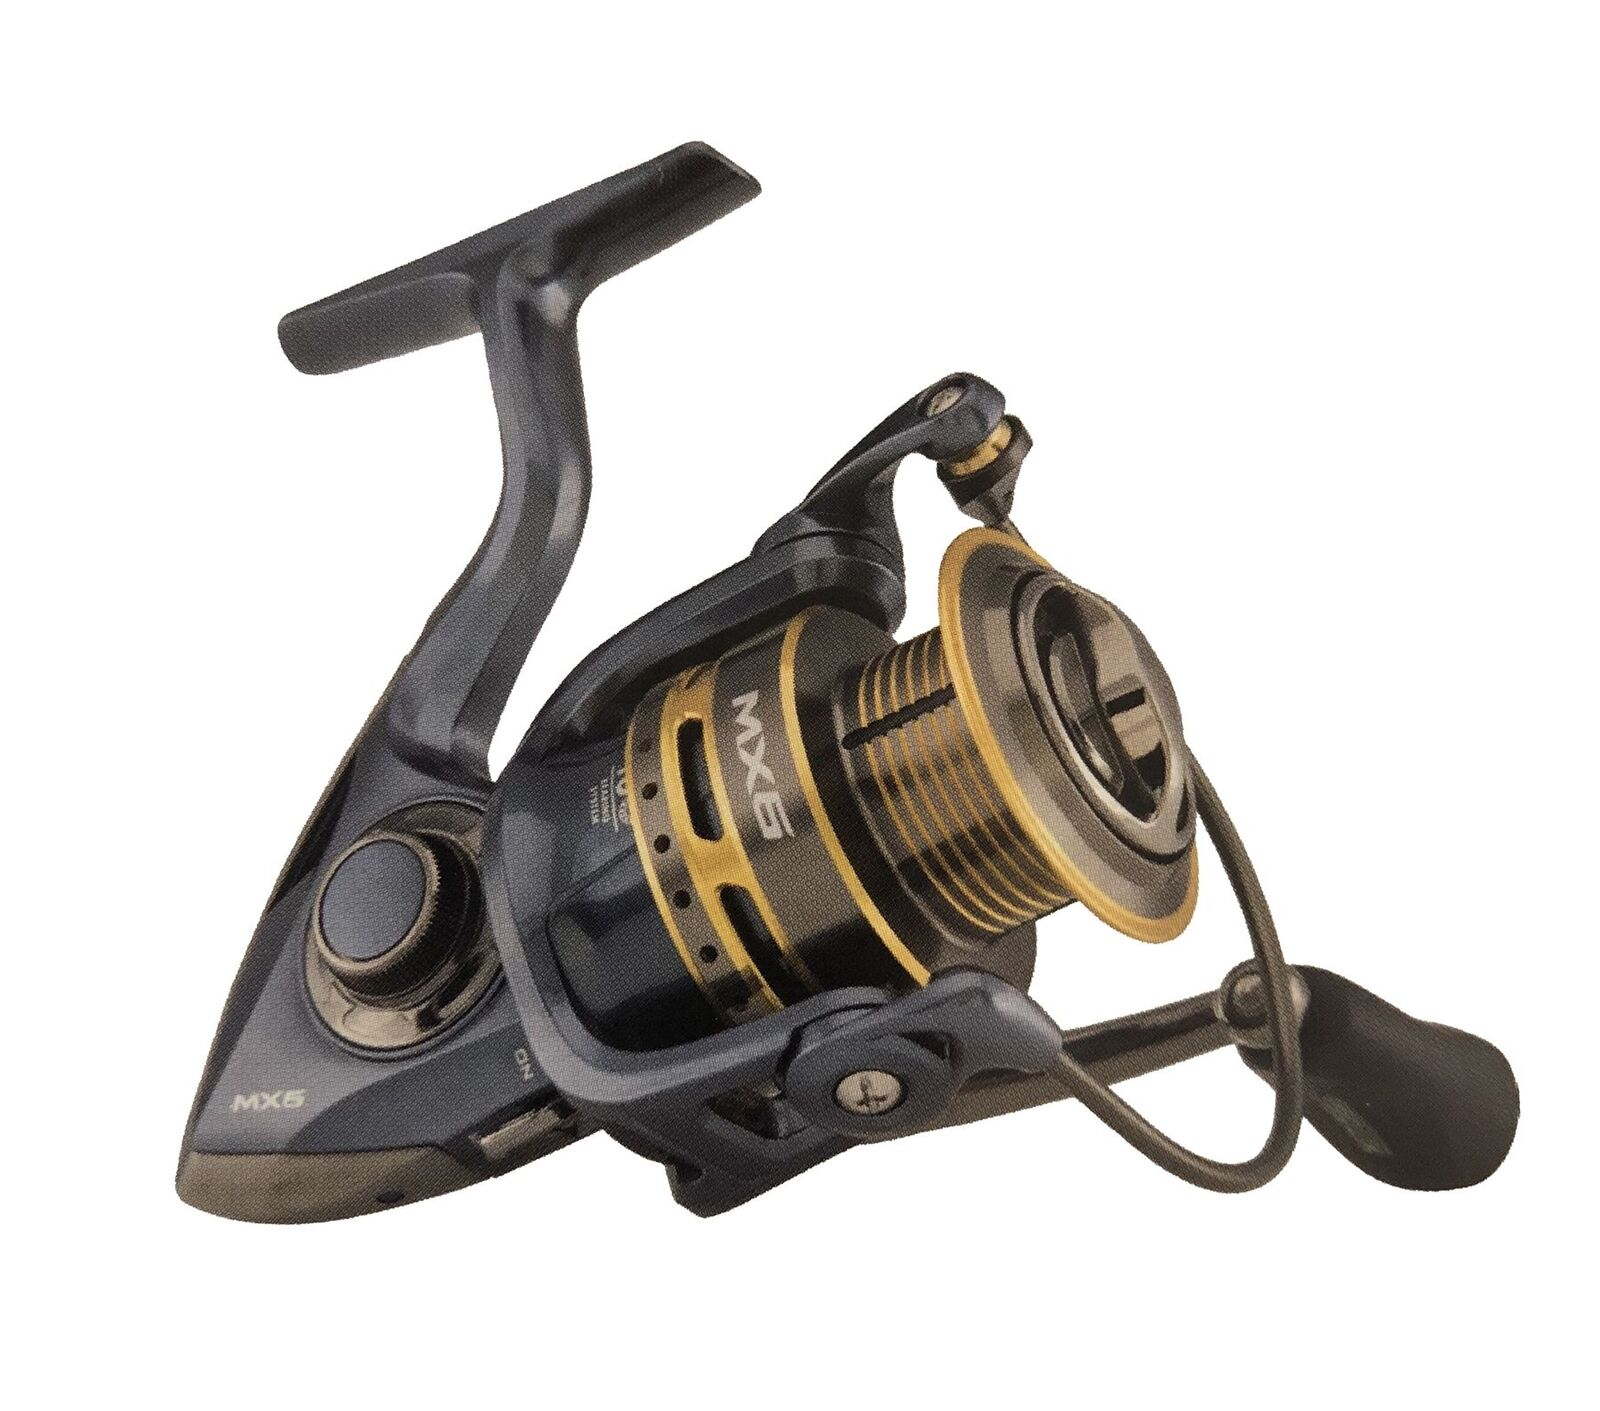 Mitchell MX6 4000 Spin   Fishing Spinning Reel